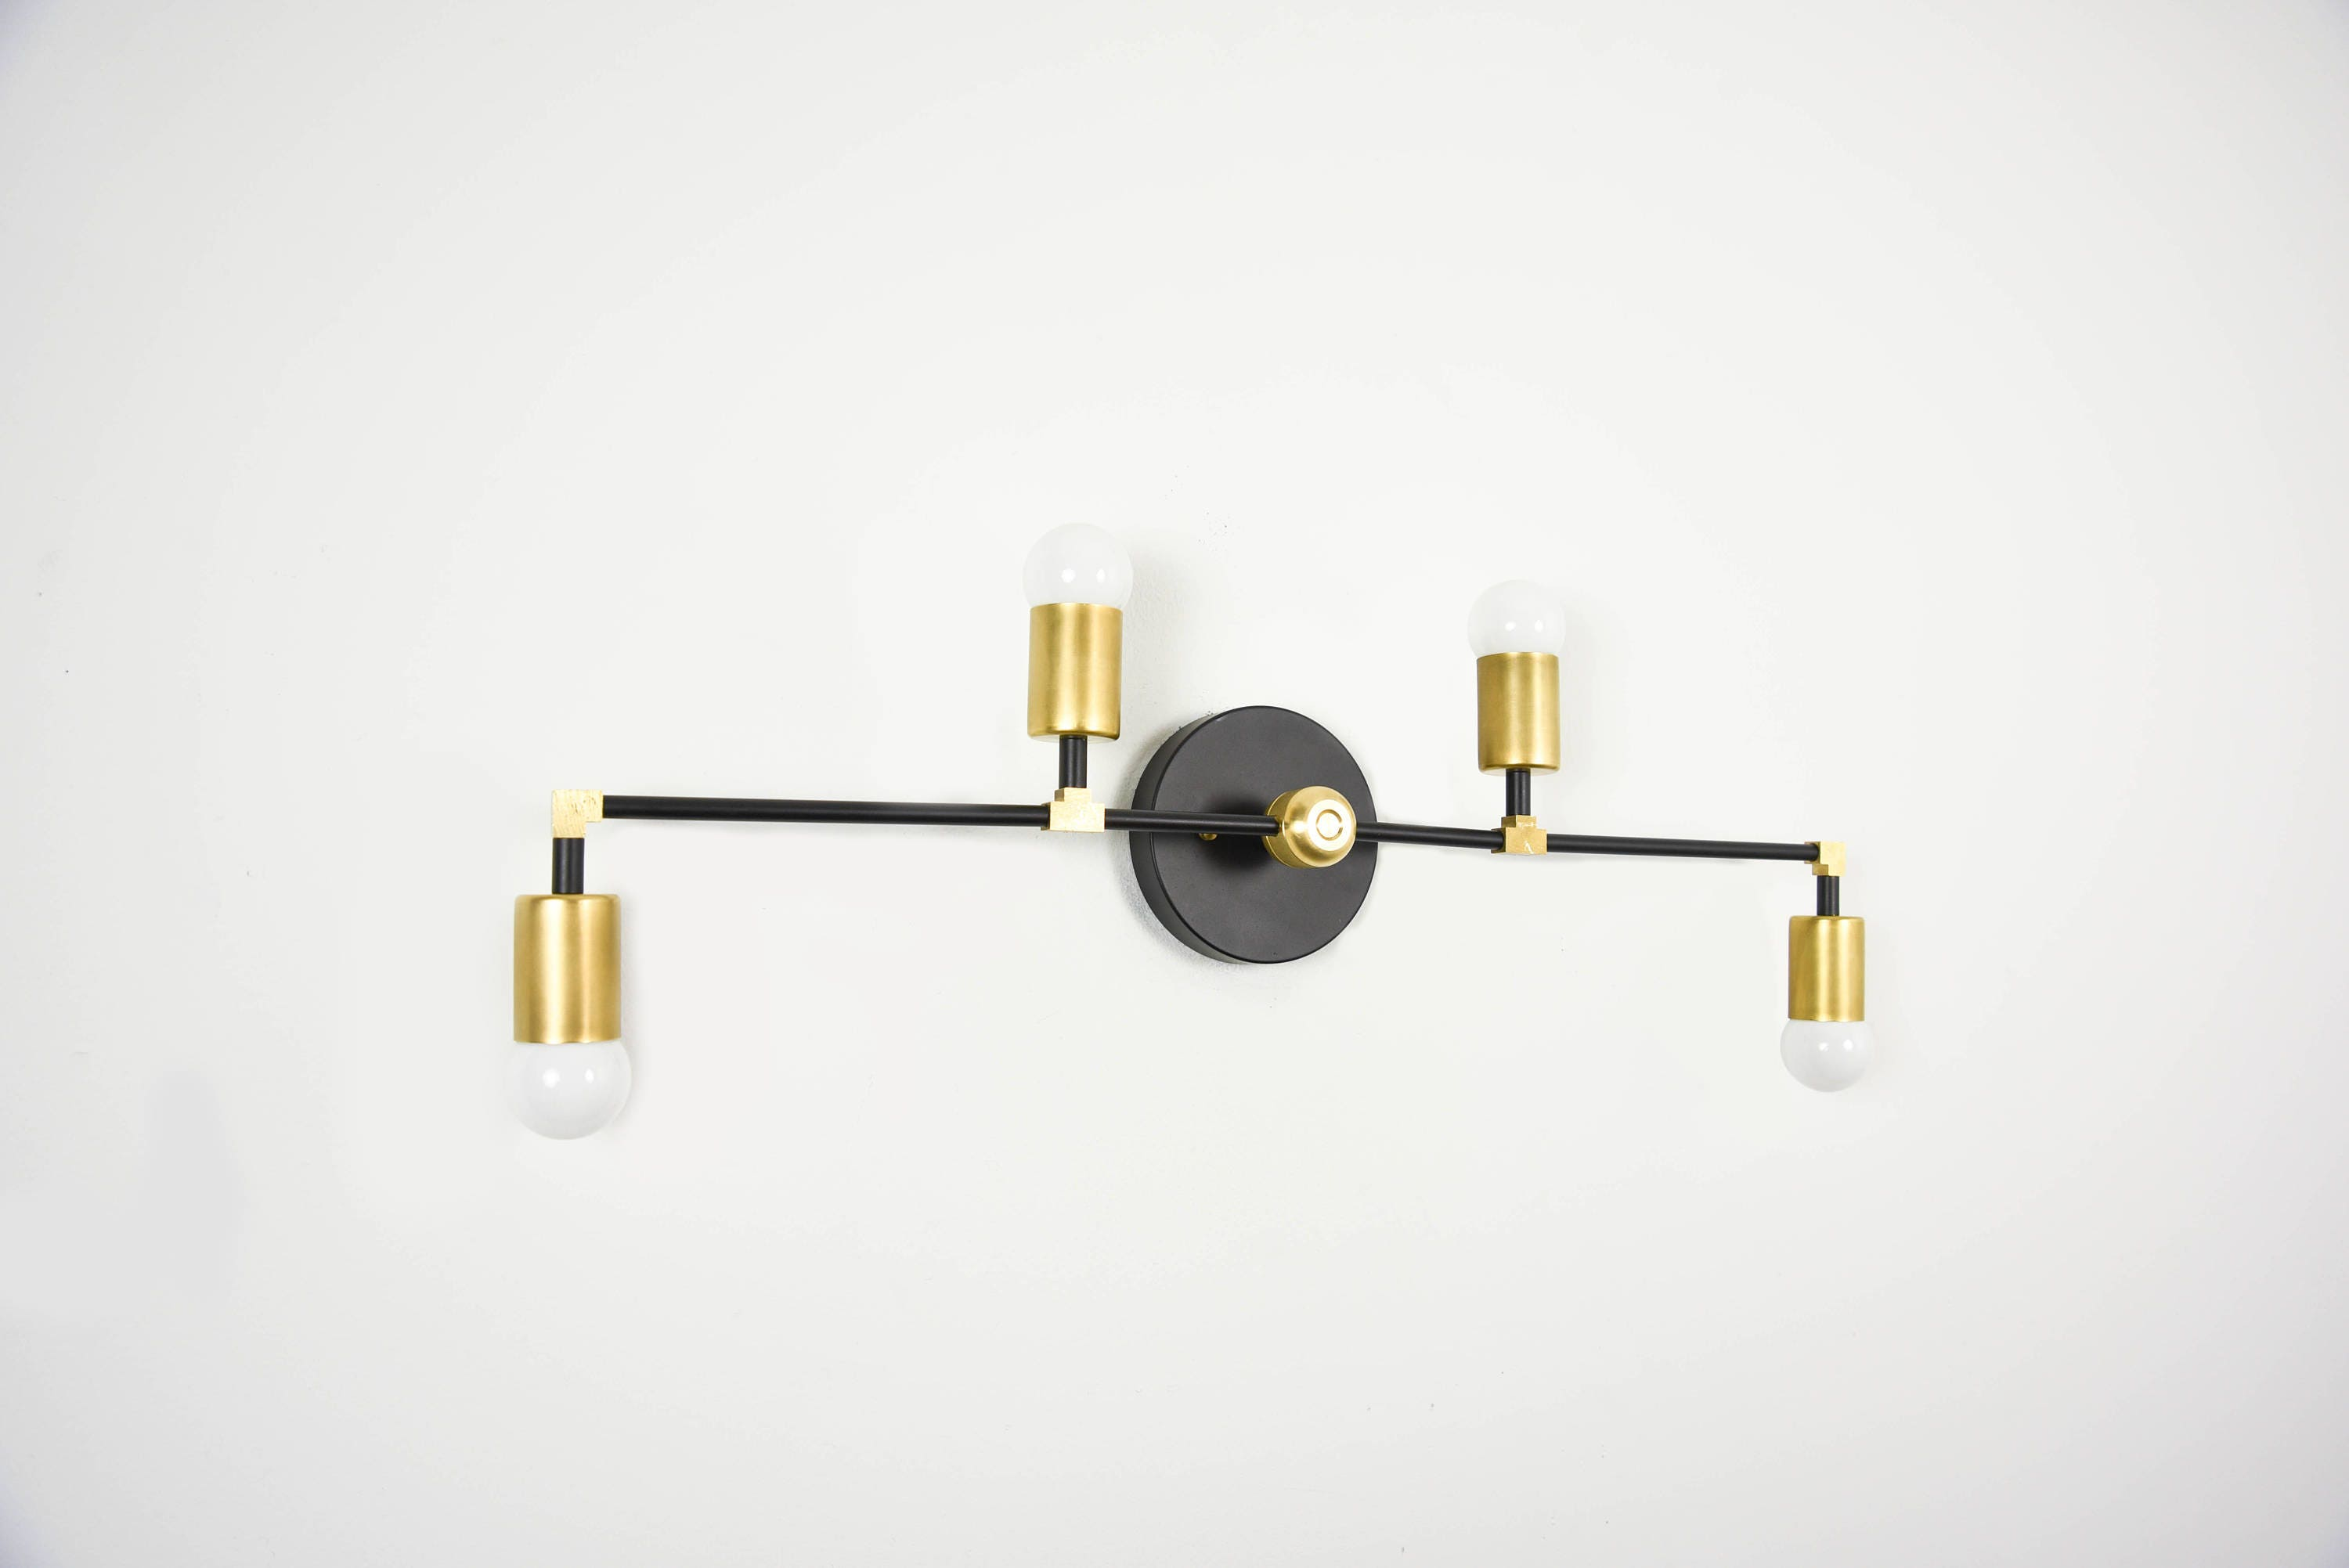 Wall Sconce Vanity 4 Light Wall Sconce Black And Brass